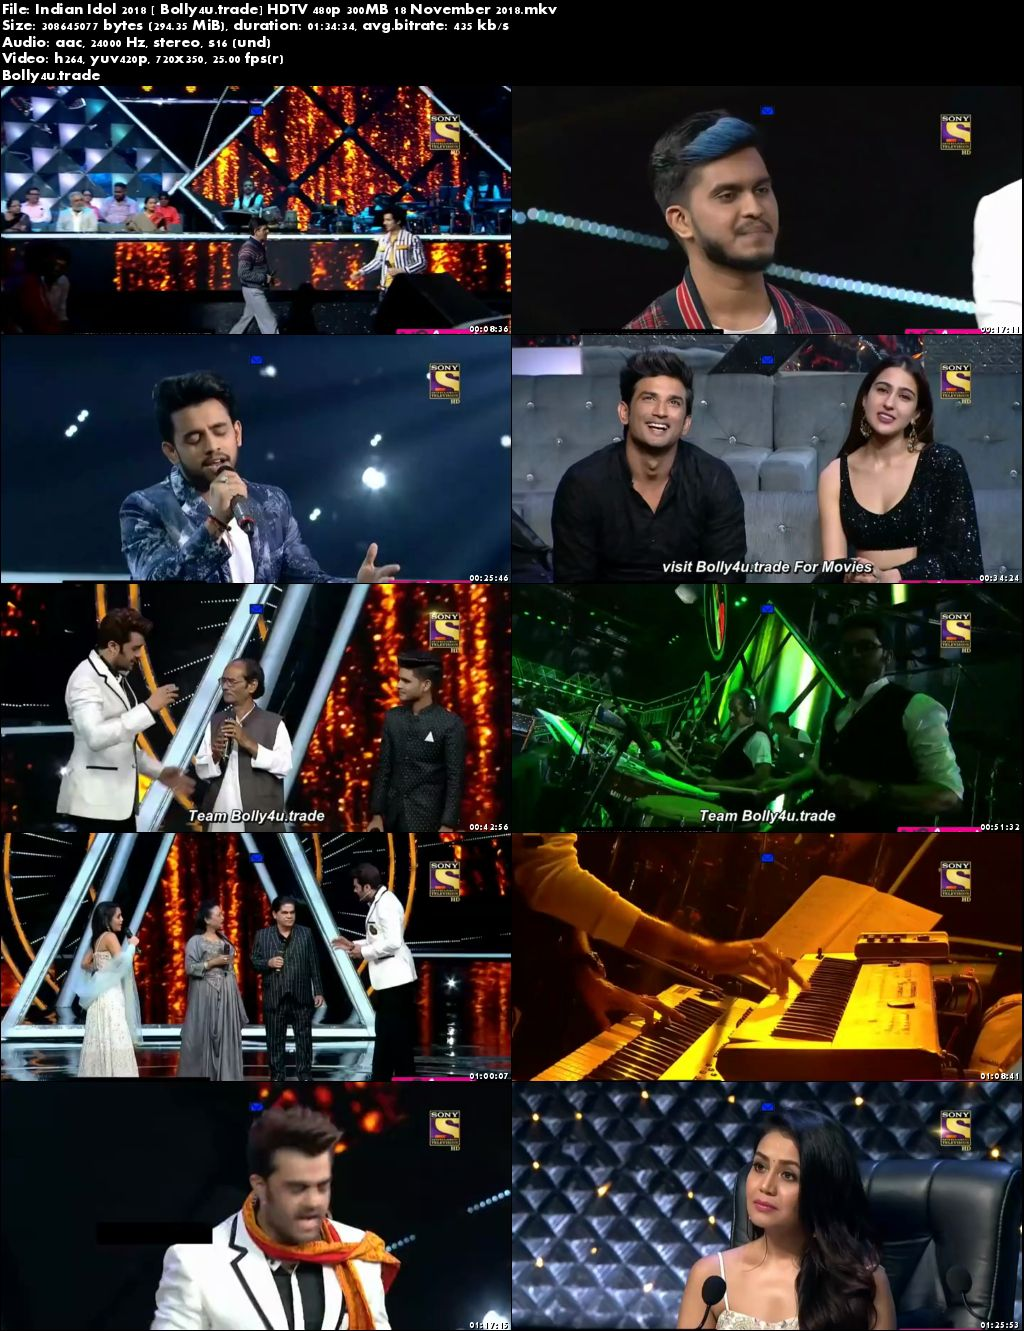 Indian Idol 2018 HDTV 480p 300MB 18 November 2018 Download